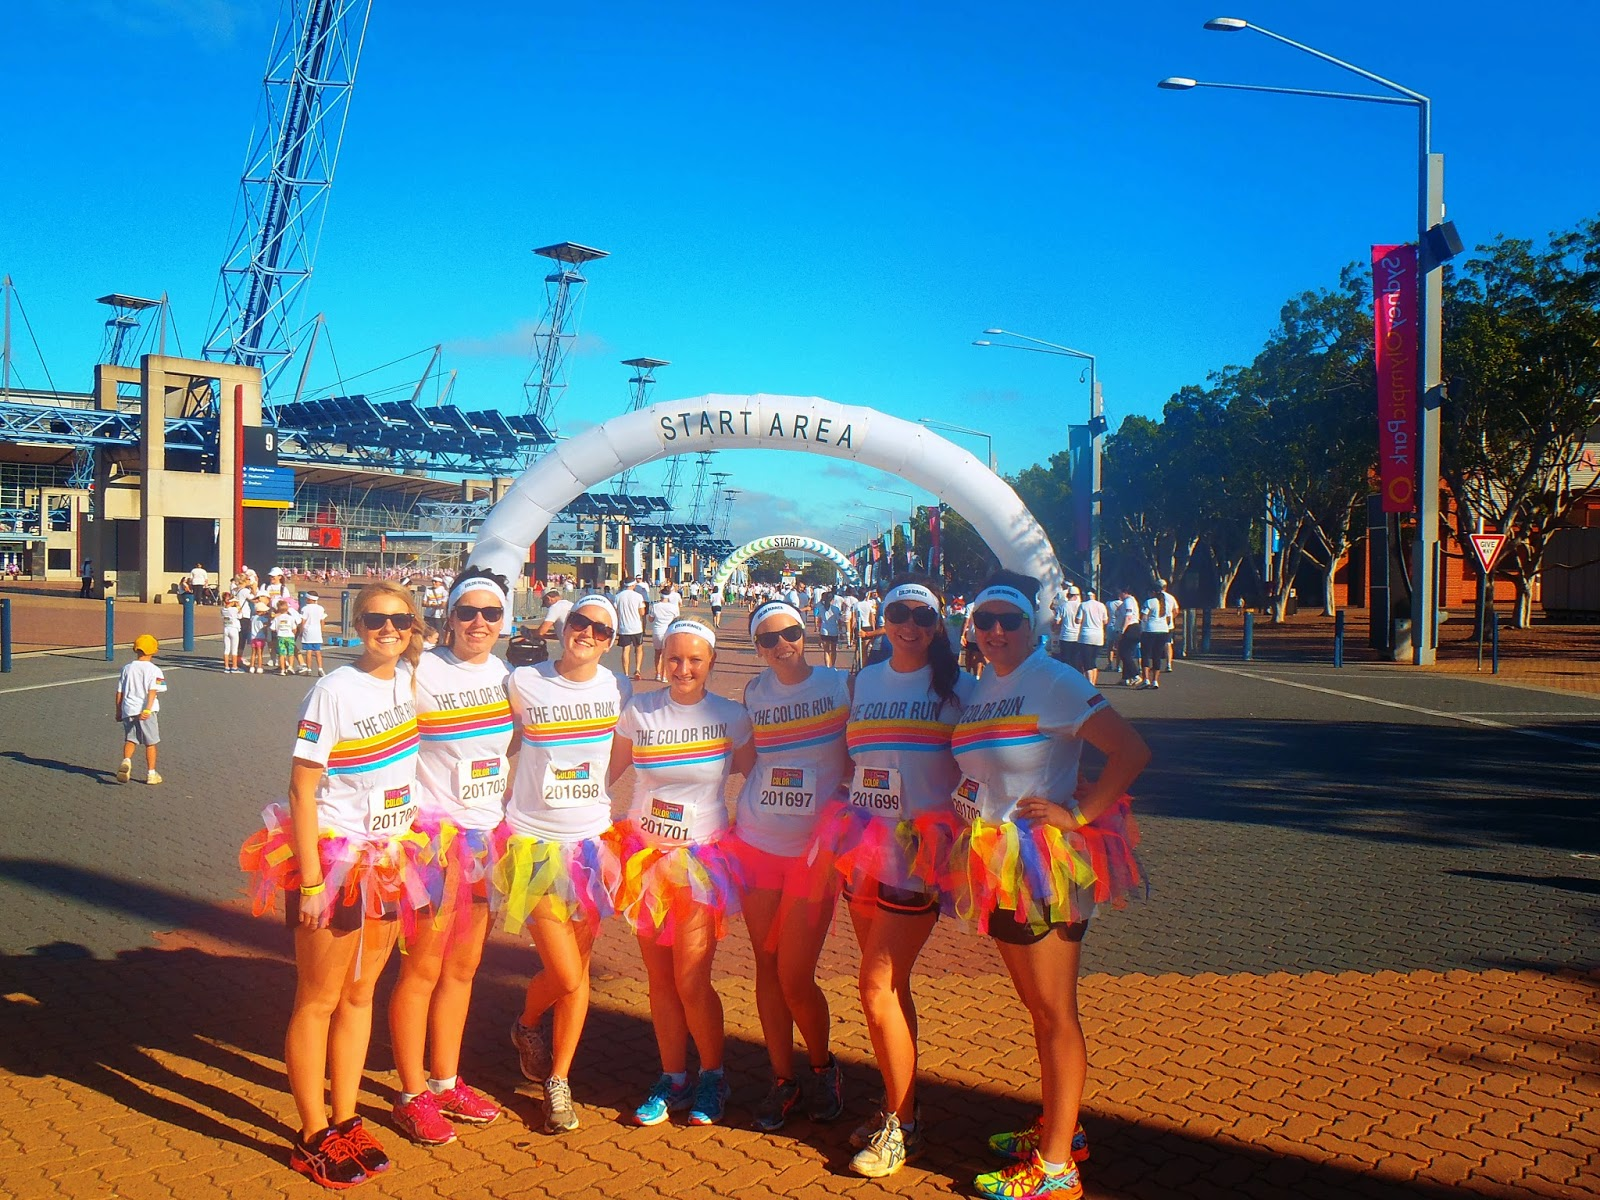 7 girls at the start of the race in tutus